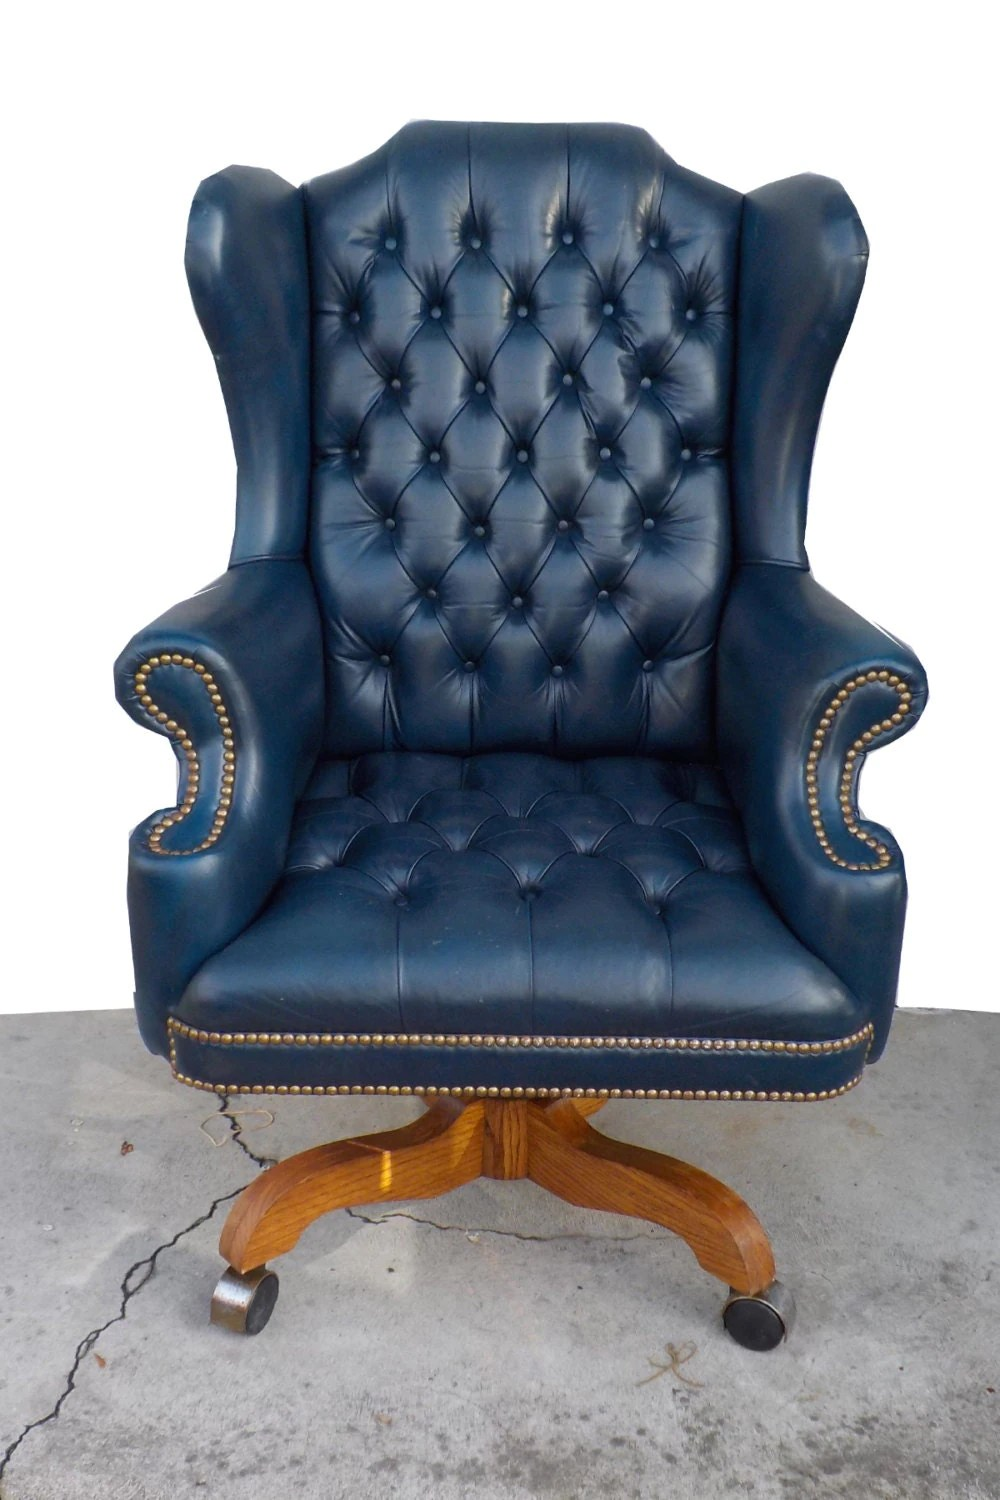 Hollywood Regency Vintage Tufted Blue Leather Chesterfield